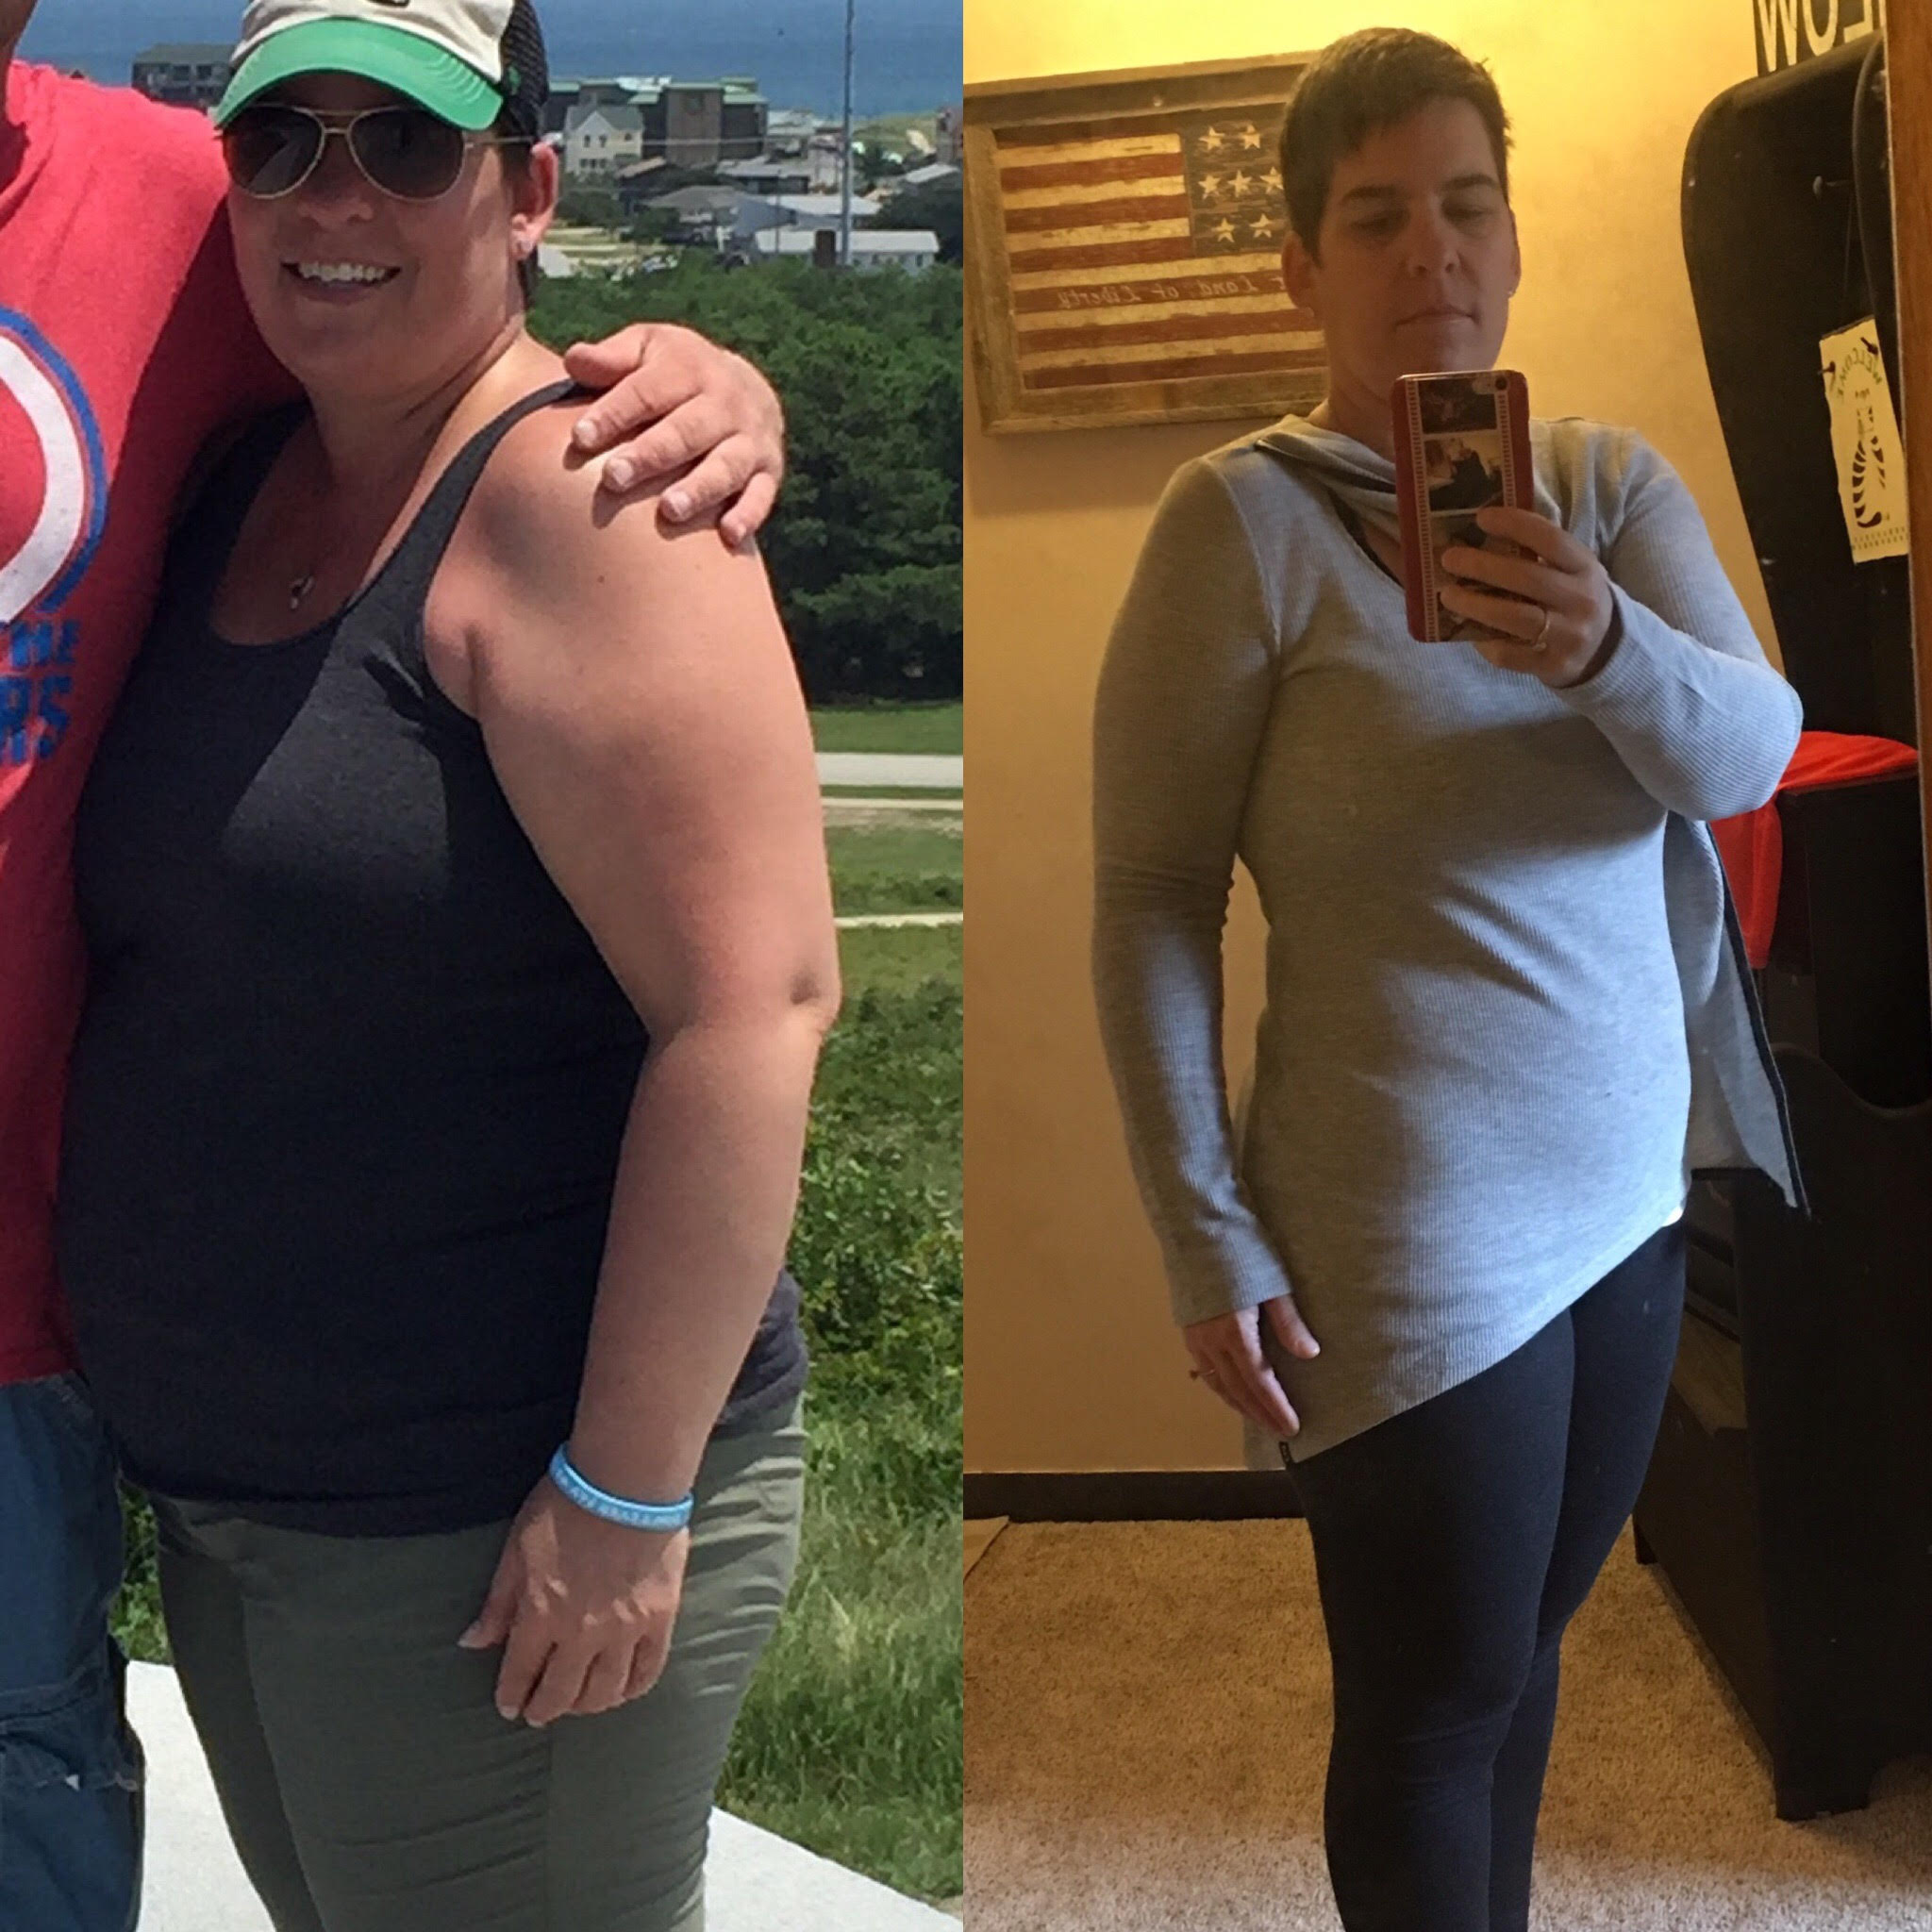 Sandra Lost 20 Pounds with Clean Eating Challenge